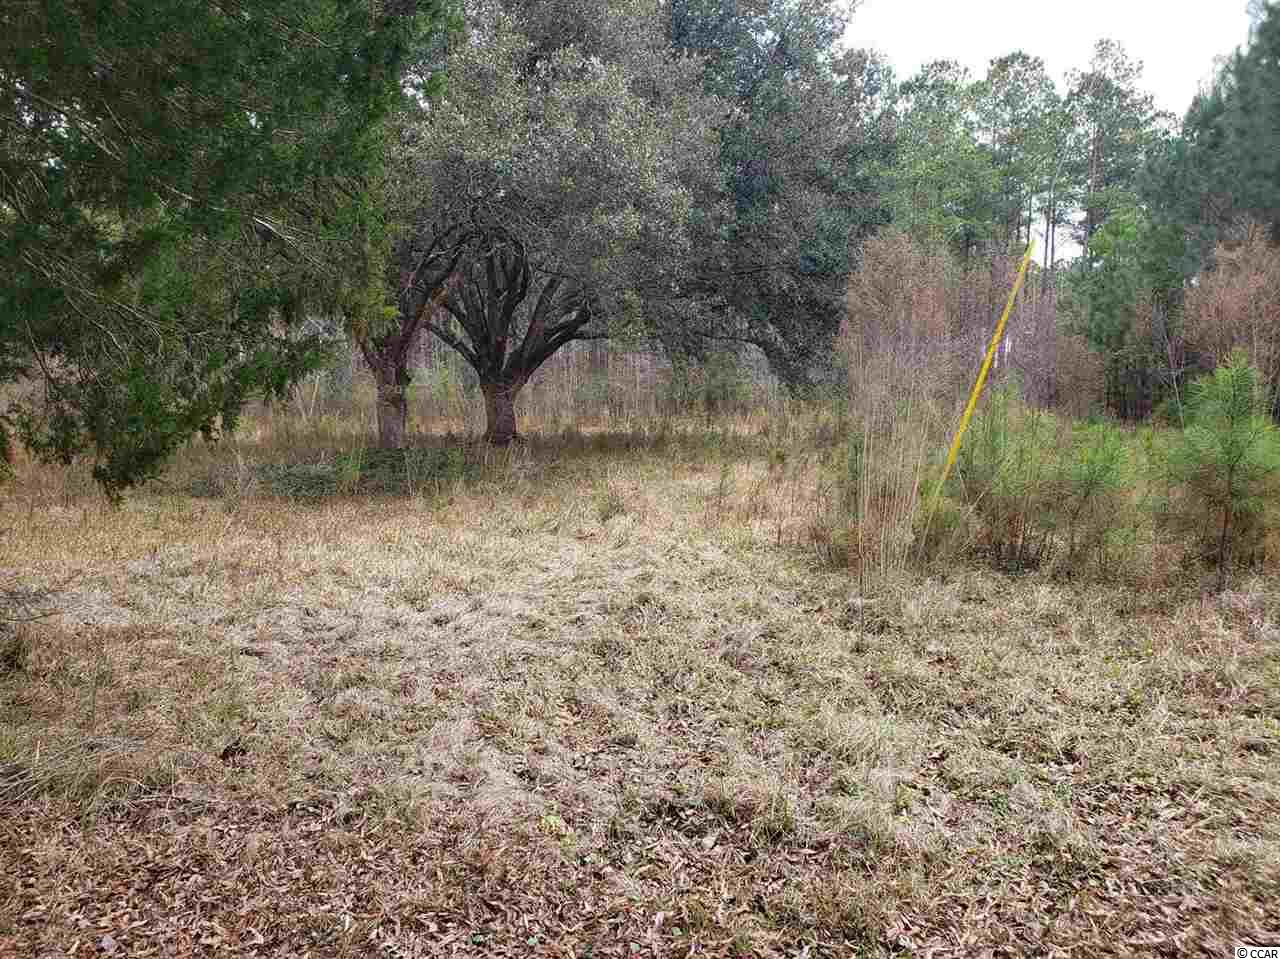 BEAUTIFUL 1.39 ACRE LOT, IT IS LOCATED OFF OF HIGHMARKET STREET AND ASCOTT PLACE RD.THE FRONT SIDE OF PROPERTY LINE HAS FENCE ON IT, IT WAS A REMAINDER LOT OF ASCOTT PLACE PLT 2757-240, SEPTIC  ON PROPERTY,PUBLIC WATER, MOSTLY BRUSH AND SOME TREES,PEACEFUL AND QUIET AREA, ZONING WILL ALLOW FOR MOBILE HOME, MODULAR HOME, AND HOUSE.